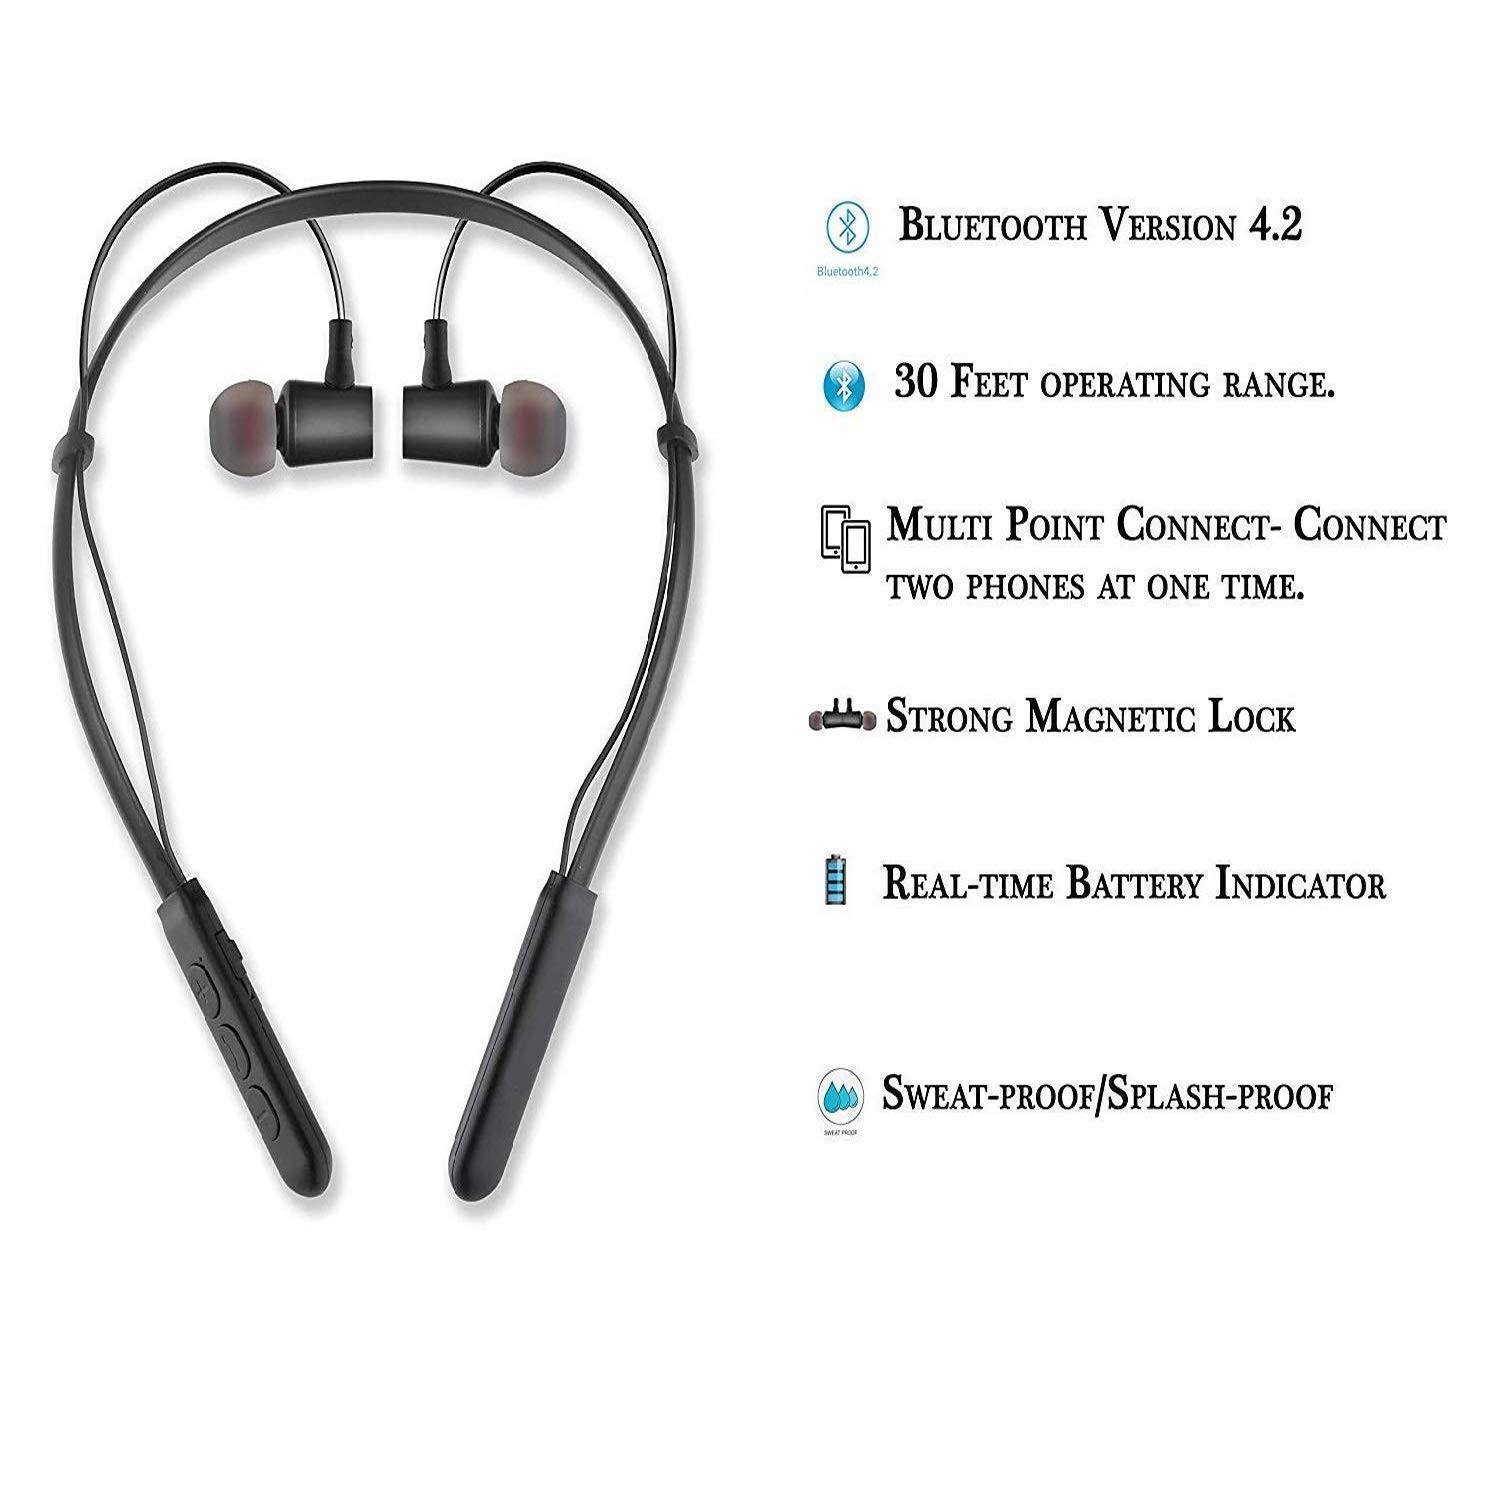 Freckle B11 Wireless Bluetooth Headset/Headphone with Mic Compatible with All Smartphones (Black)